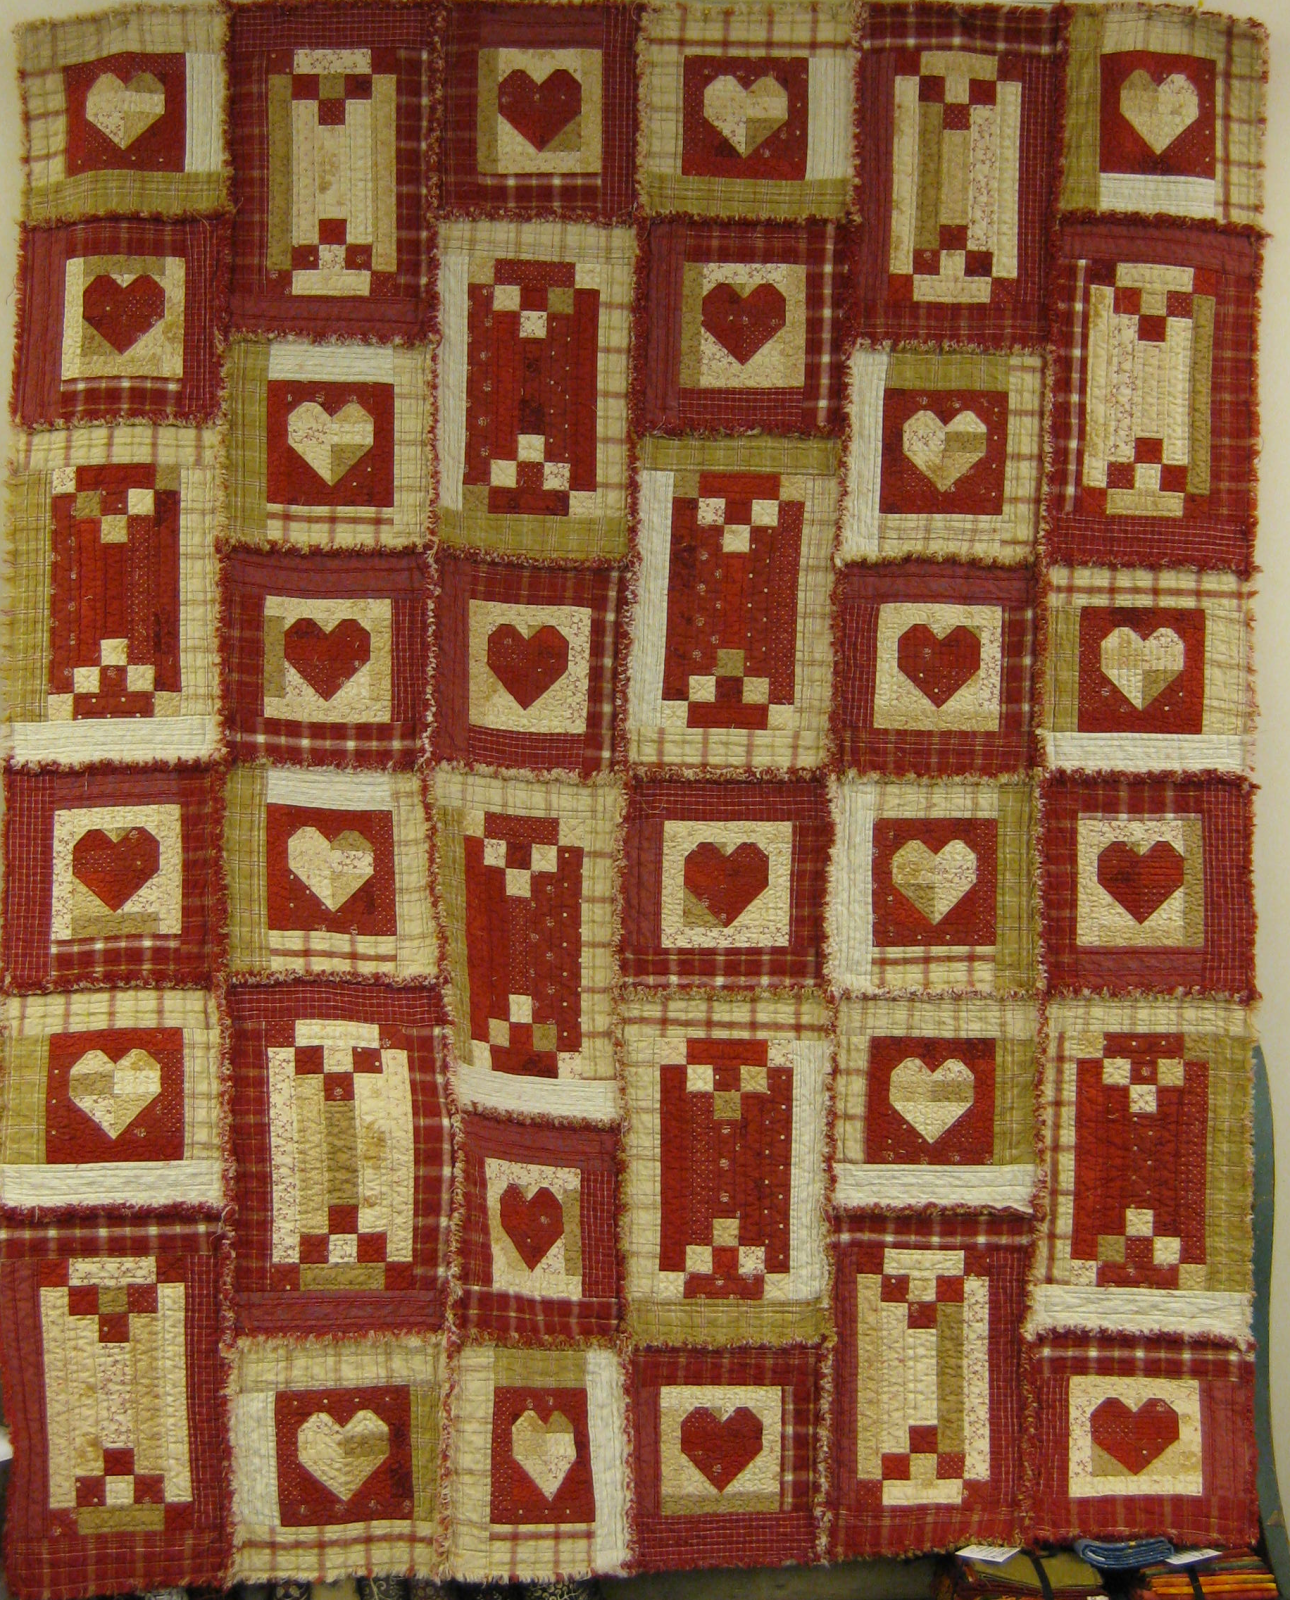 Quilted projects designed by The Quilt Peddler LLC : quilt peddler fennimore wi - Adamdwight.com